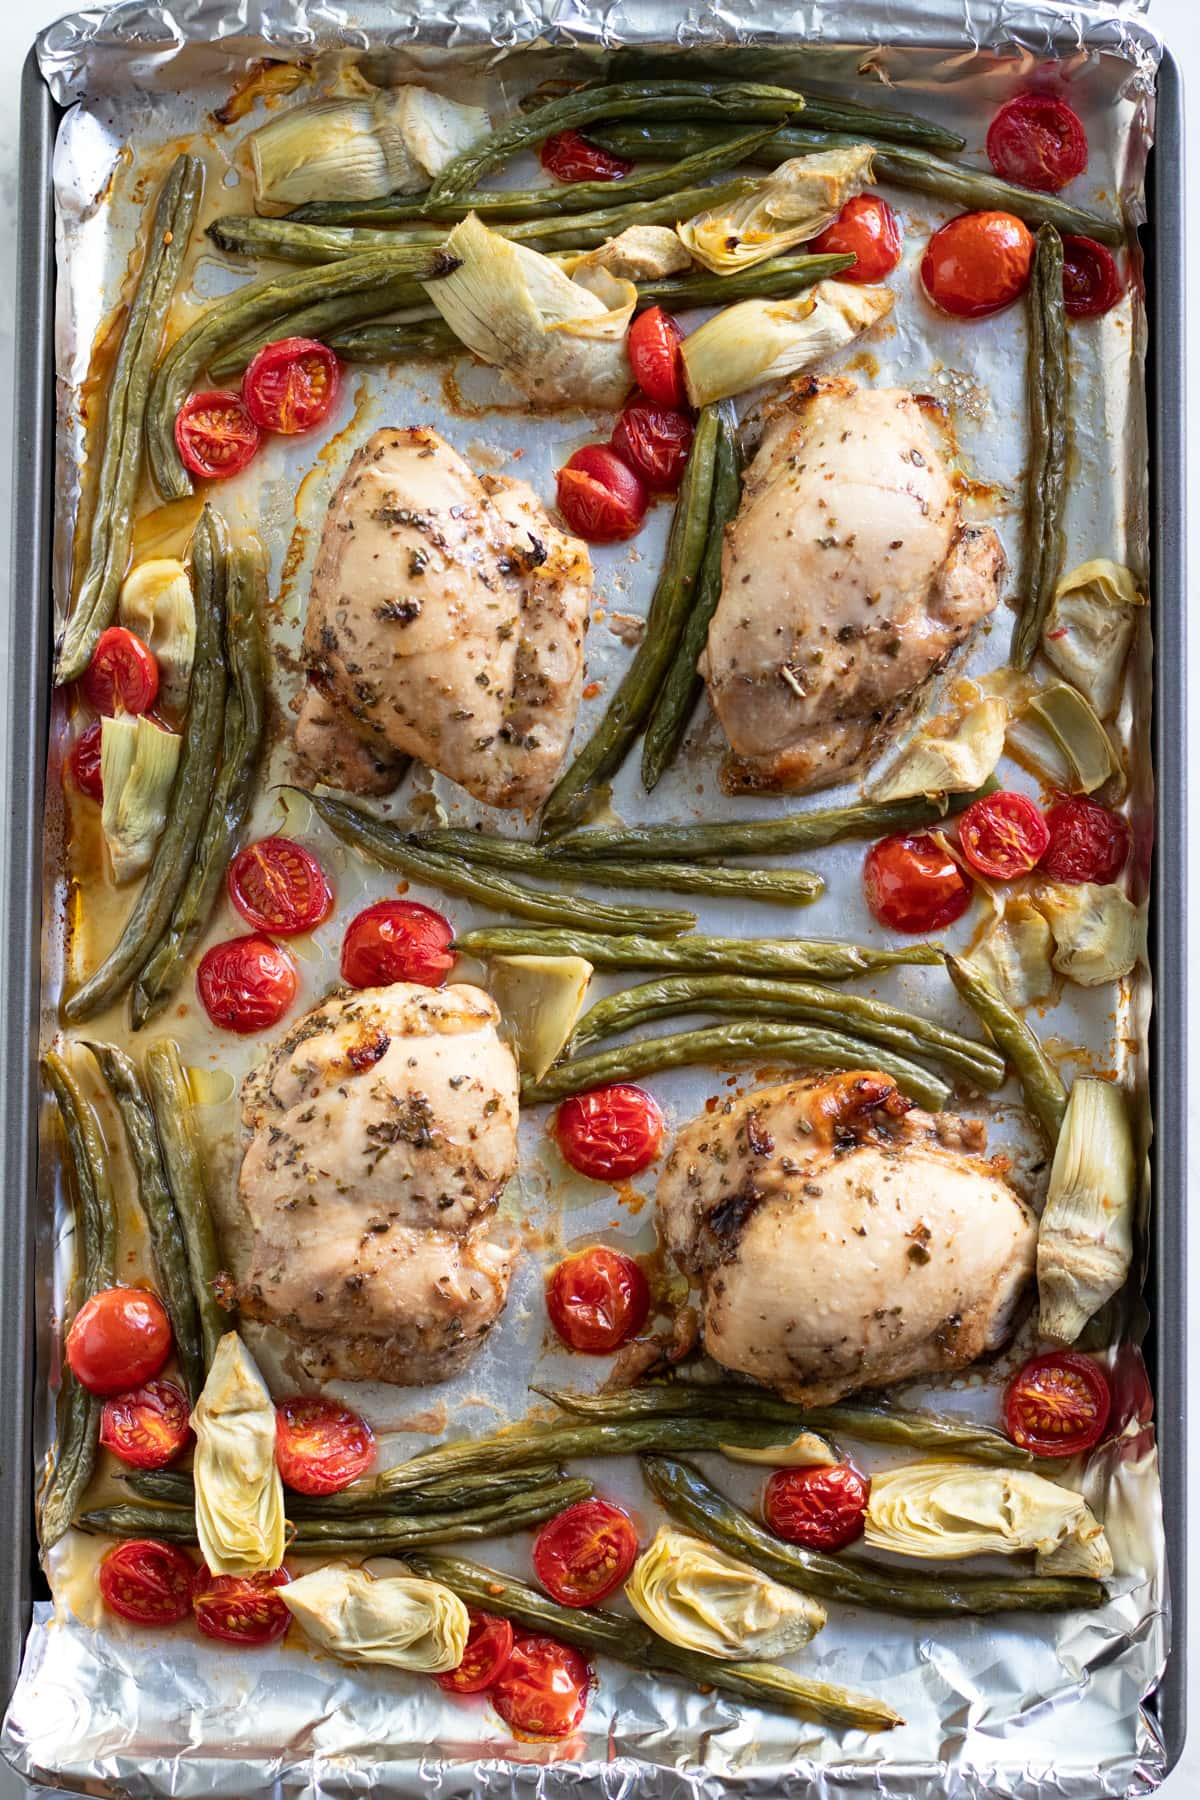 A sheet pan covered in aluminum foil with baked chicken, green beans, cherry tomatoes, and canned artichokes on top.